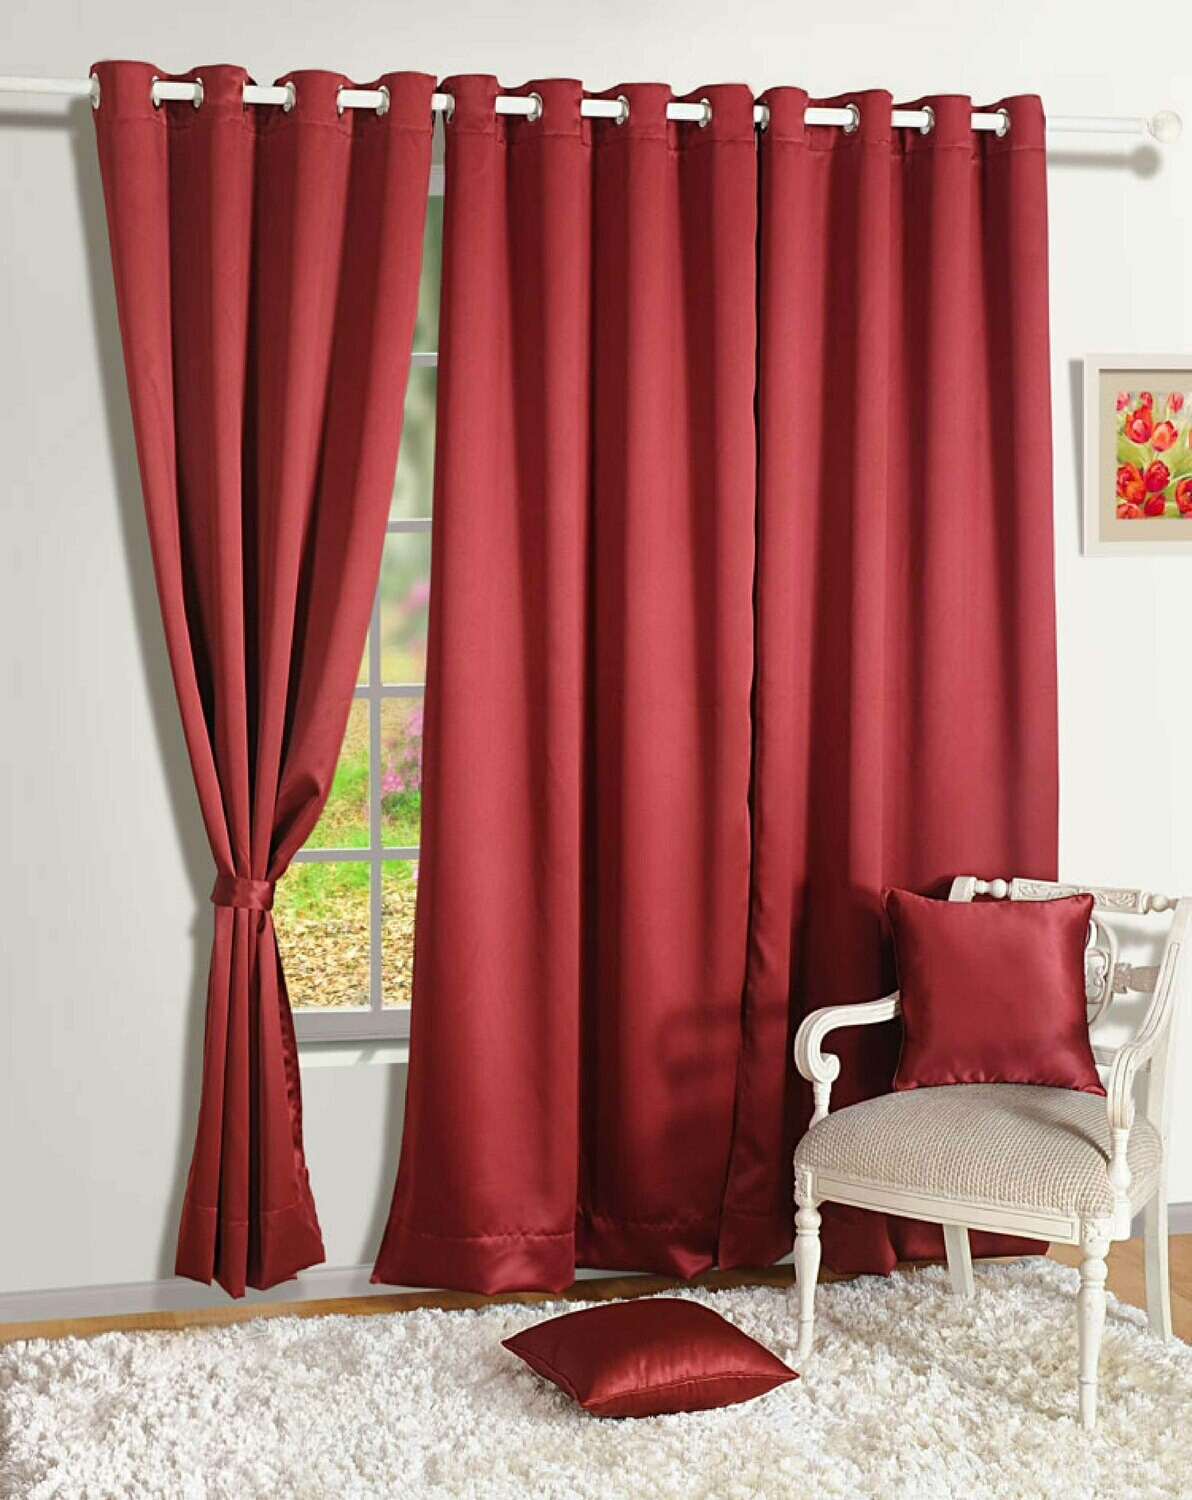 Swayam Maroon Colour Solid Blackout Eyelet Curtain for Door